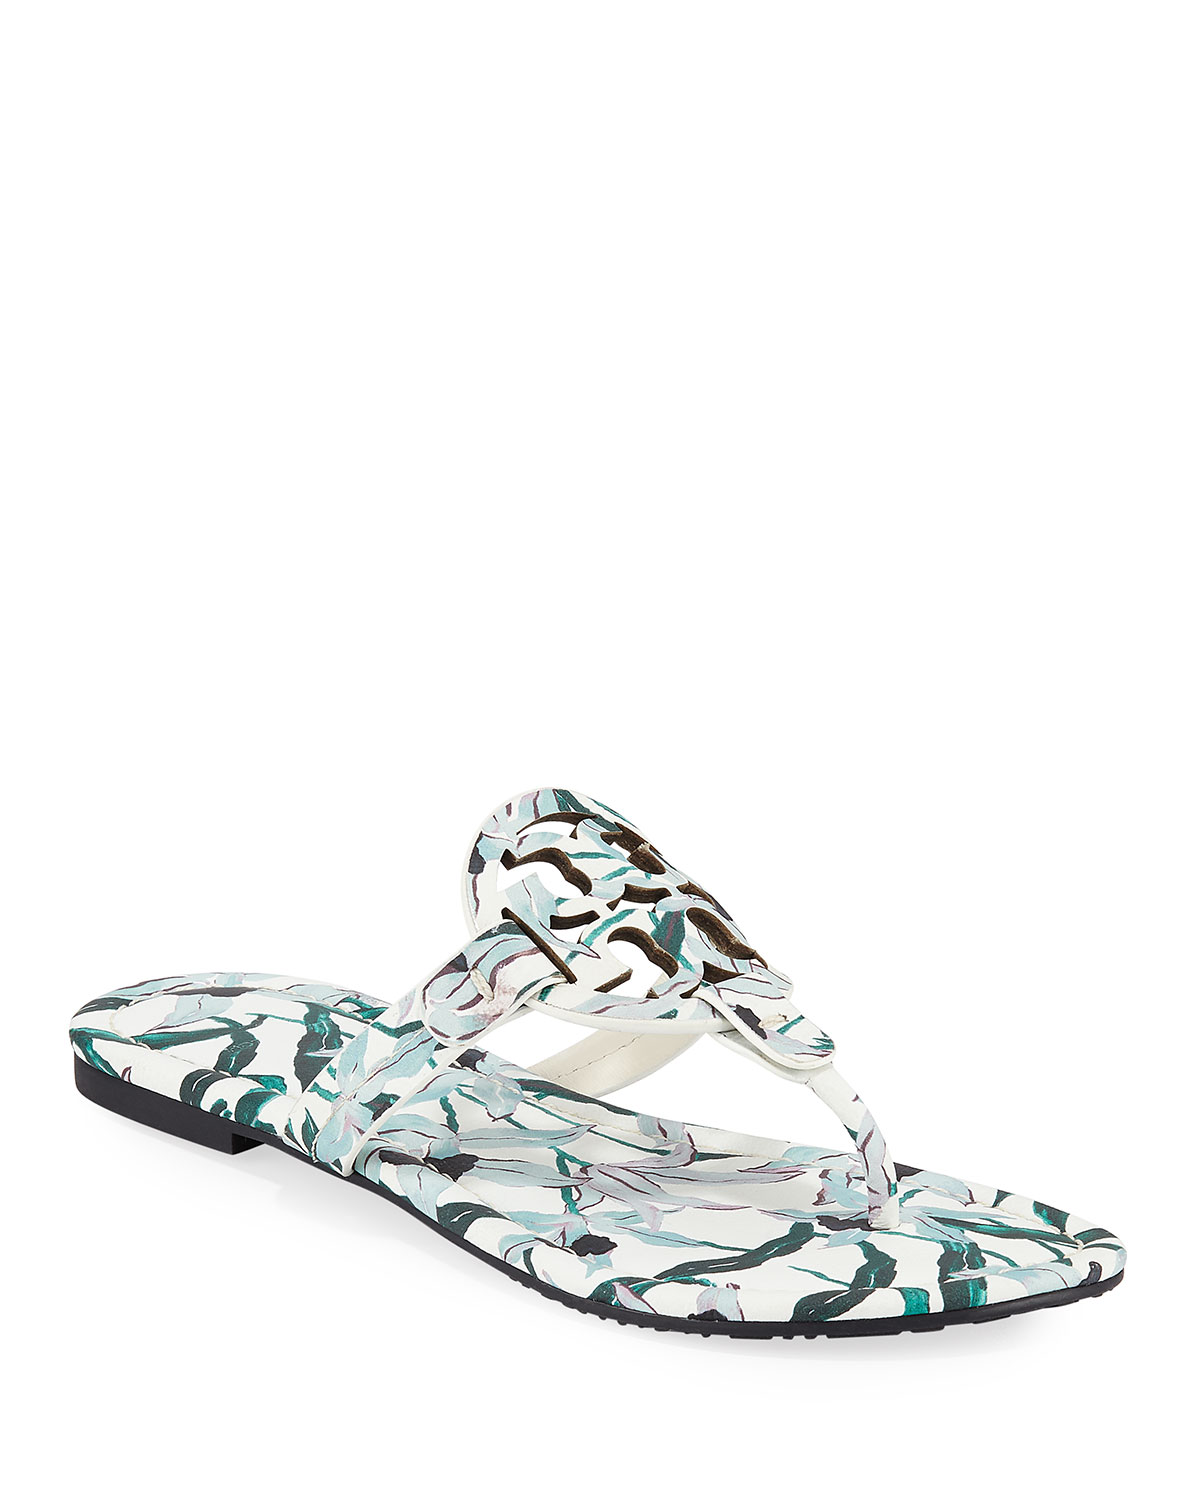 d681d769afa9 Tory Burch Miller Medallion Floral-Print Leather Flat Thong Sandals ...